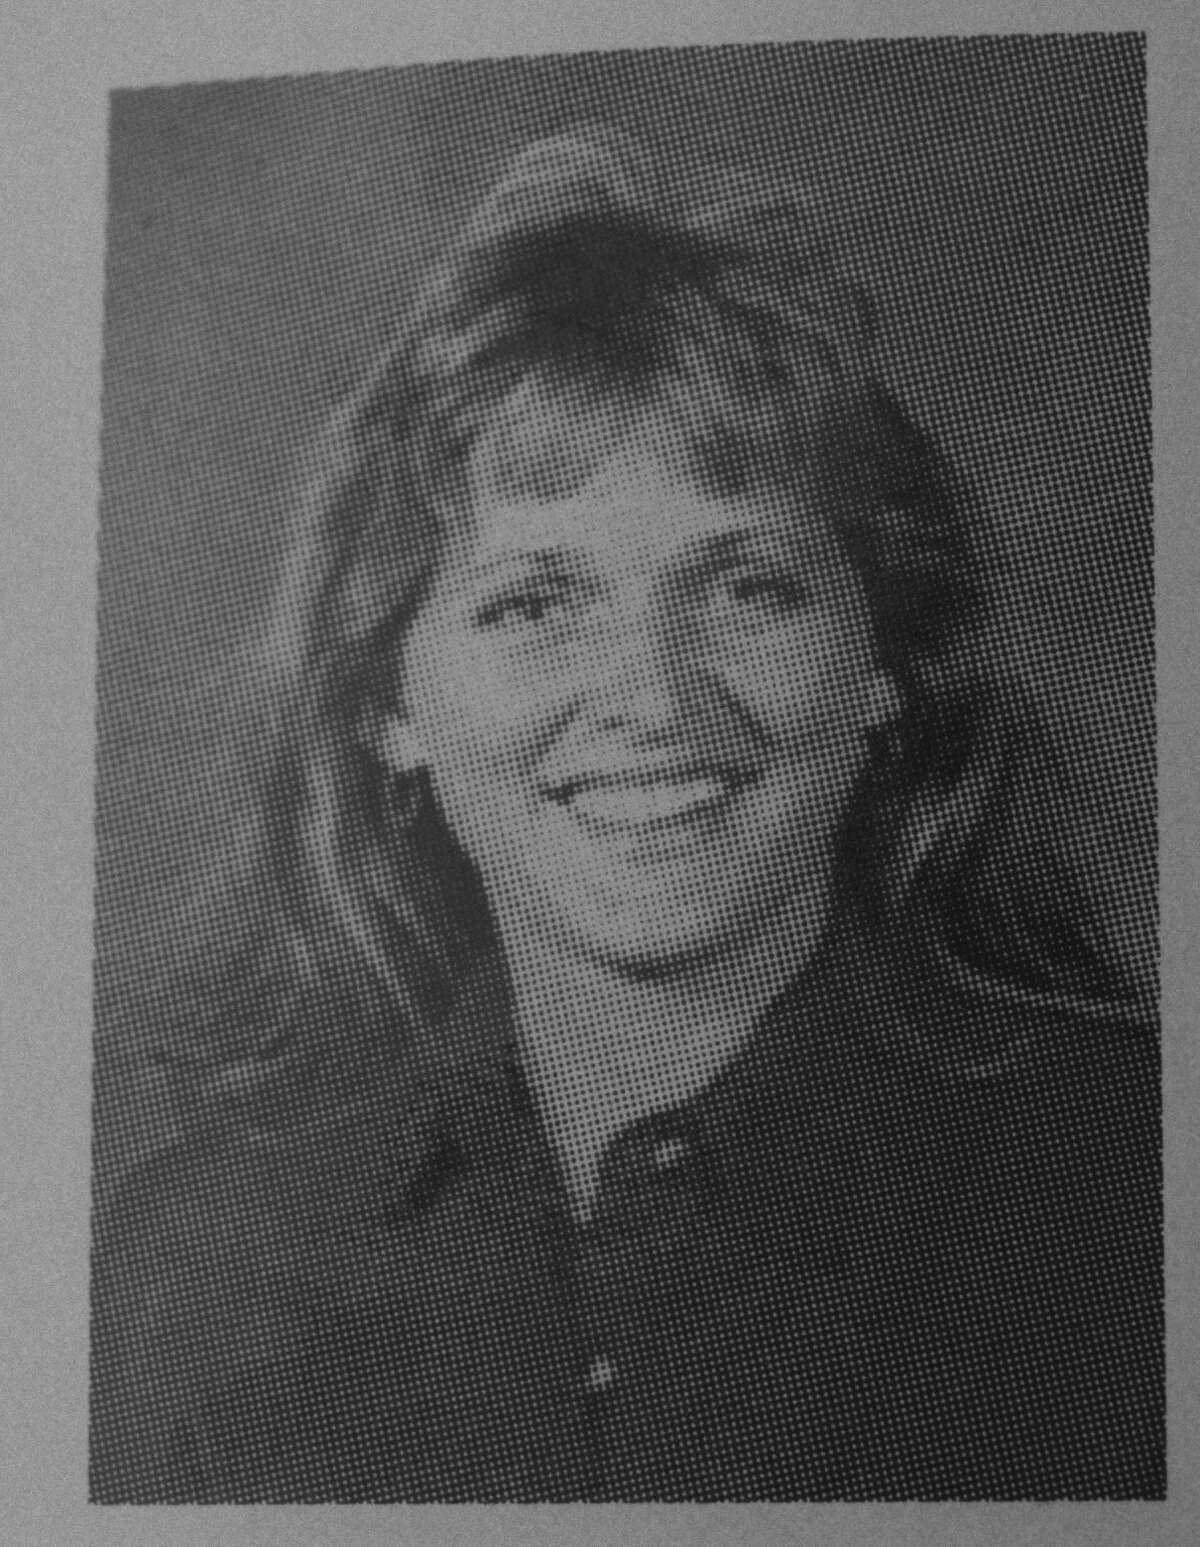 David Temple's wife, Belinda Temple, was killed in 1999 in their home.